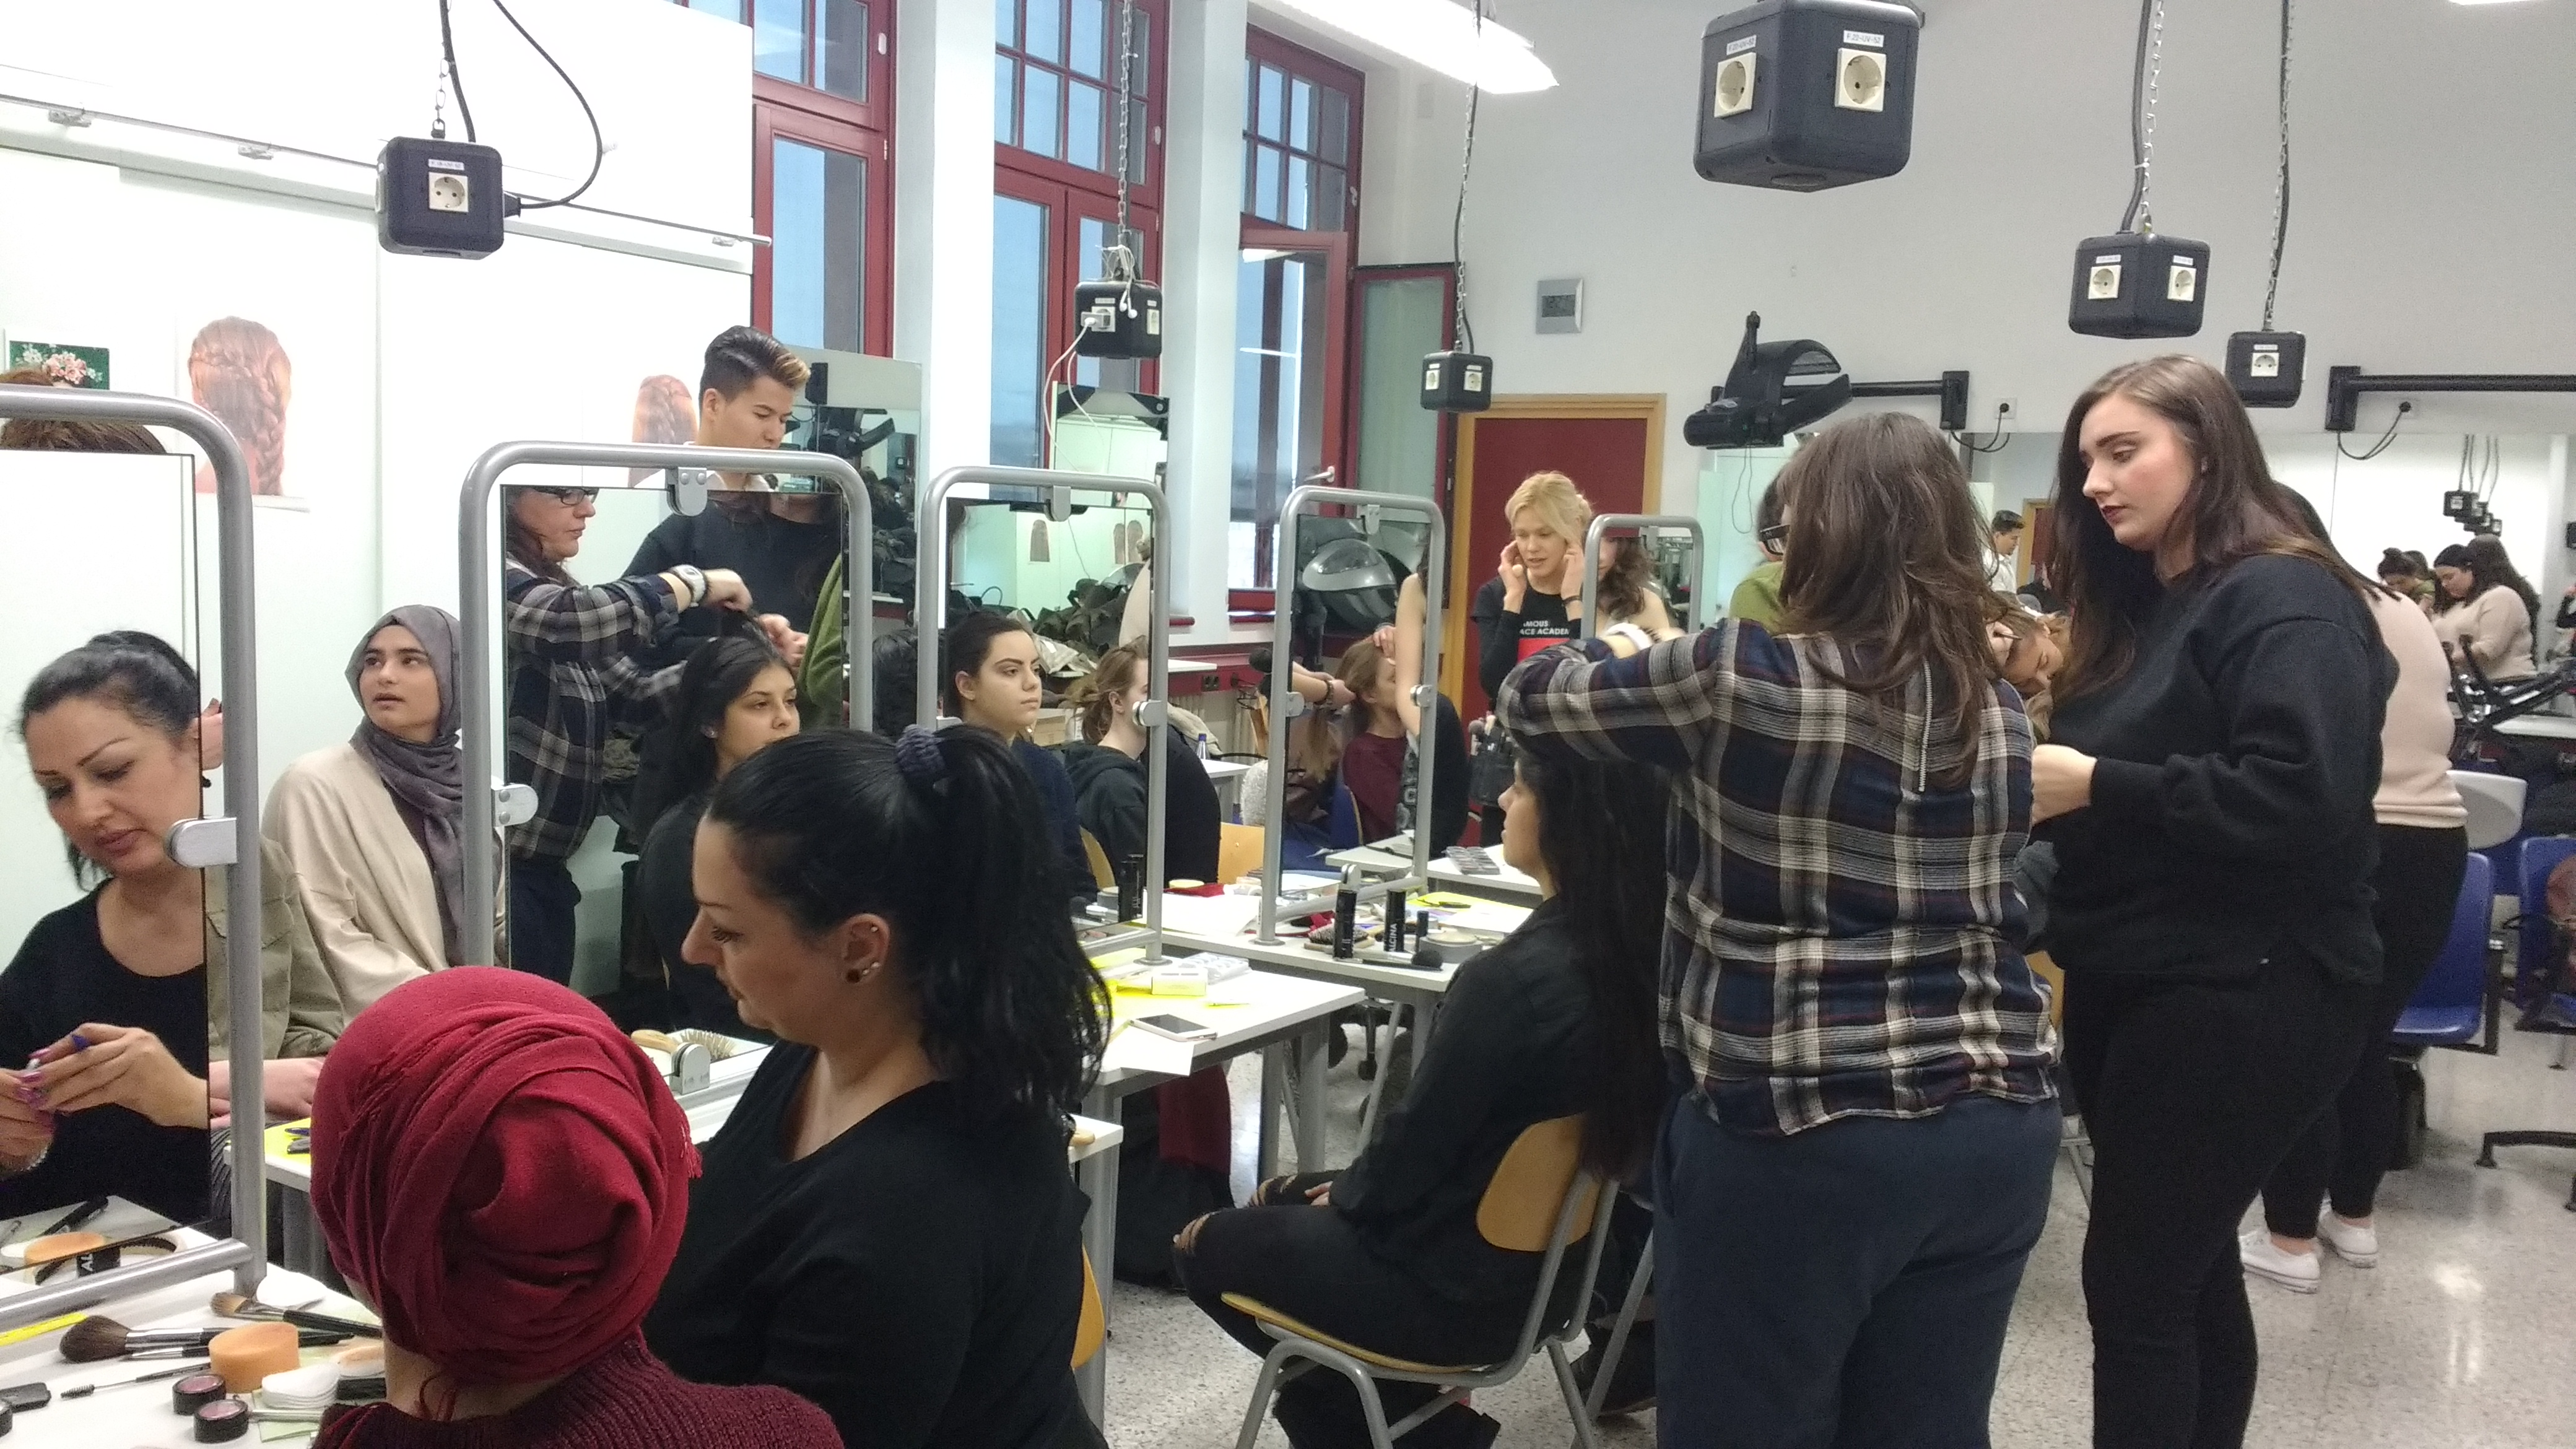 Schule f r bekleidung und mode famous face academy for Mode bekleidung schule frankfurt